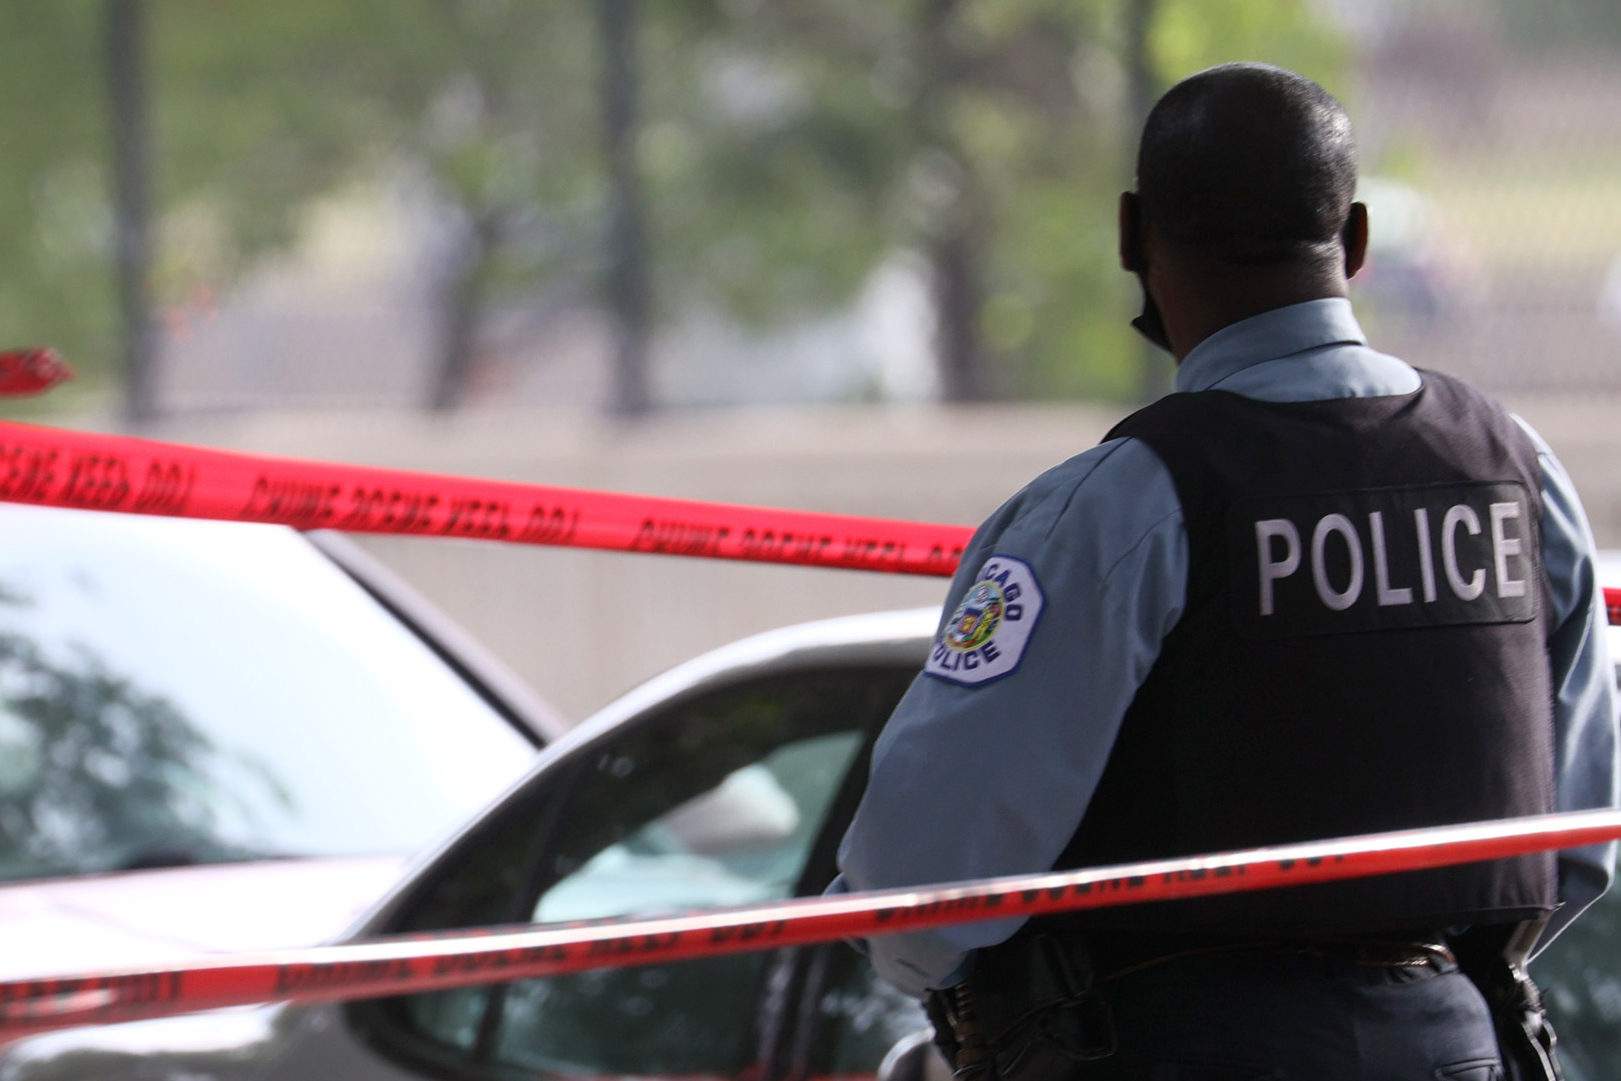 GOP leaders bemoan so-called crime wave in America. It's a lie, Democratic group says.